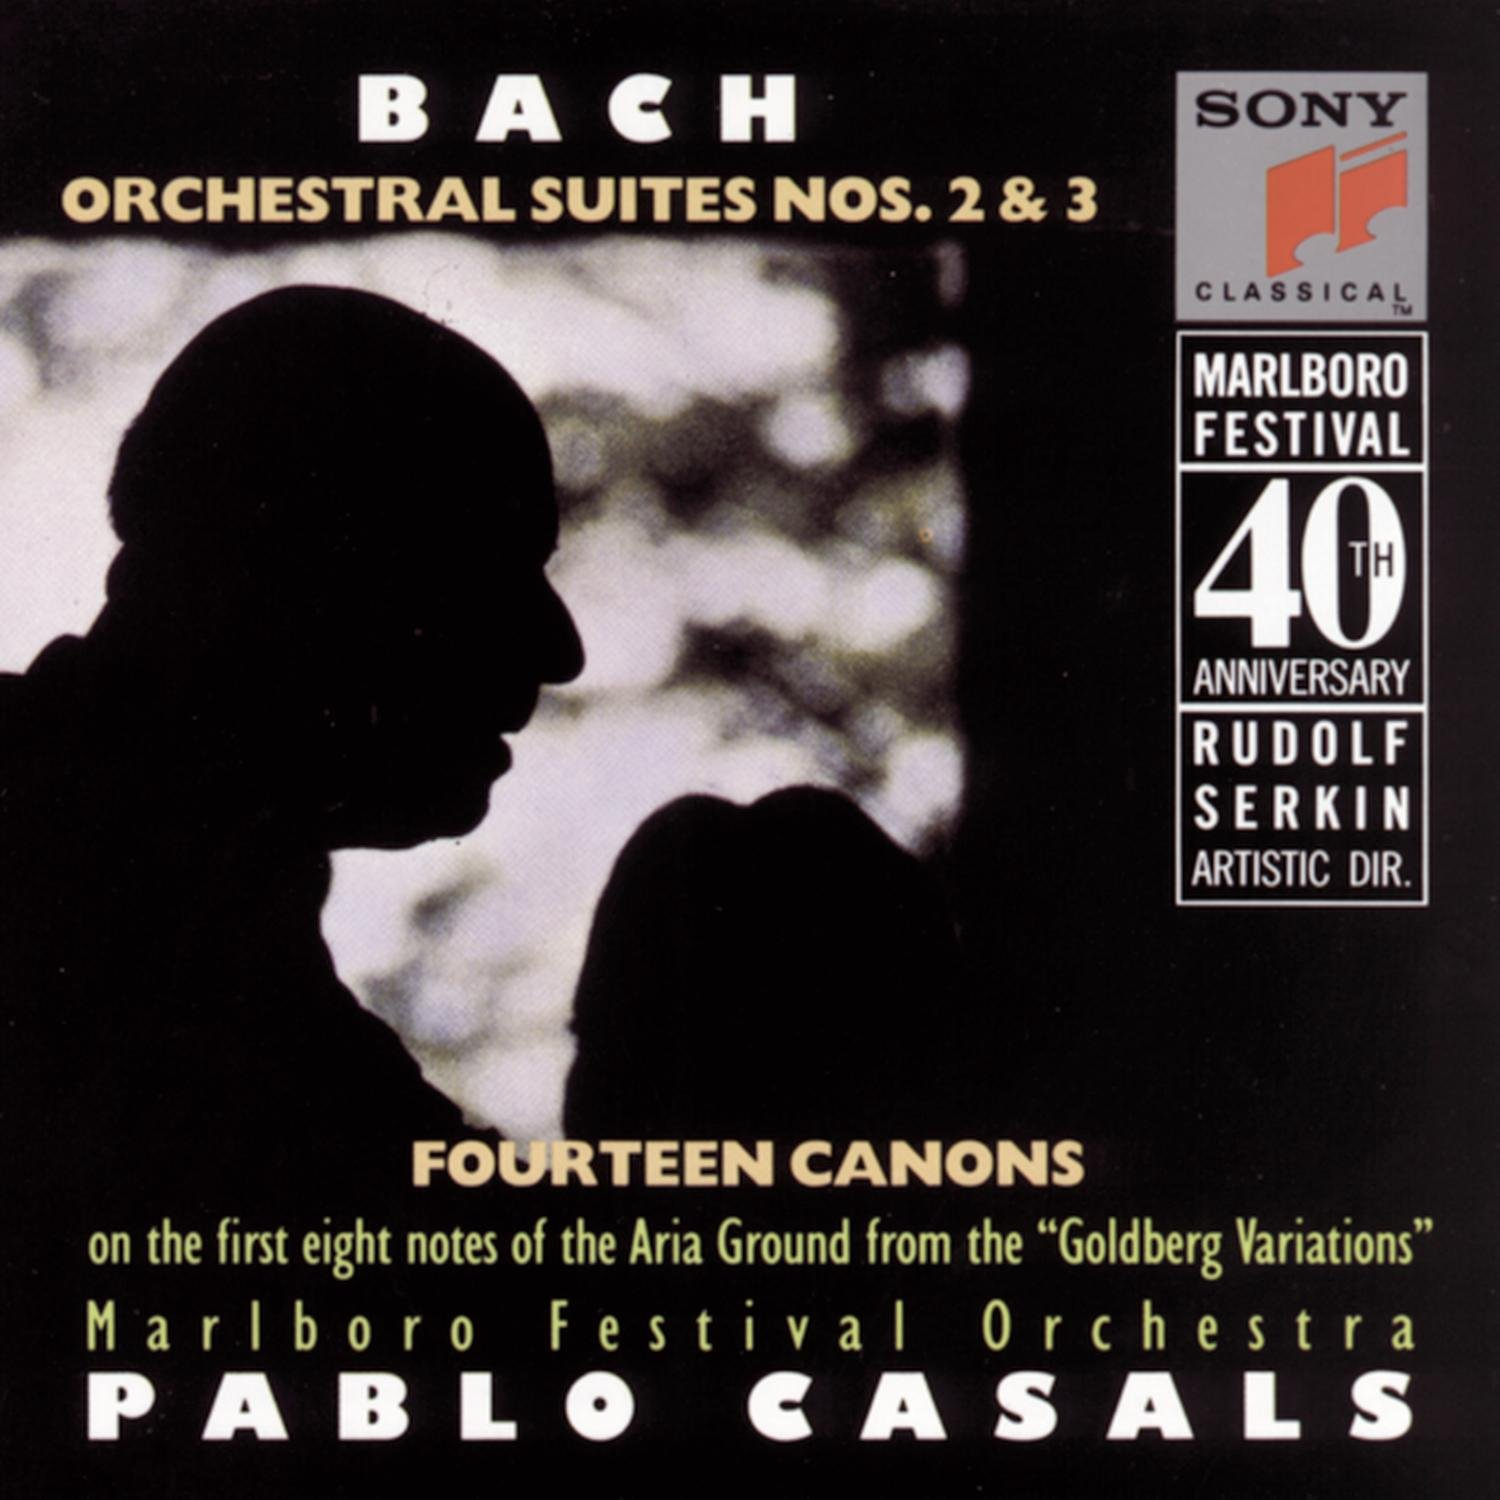 Bach: Orchestral Suites 2 & 3, Goldberg Canons